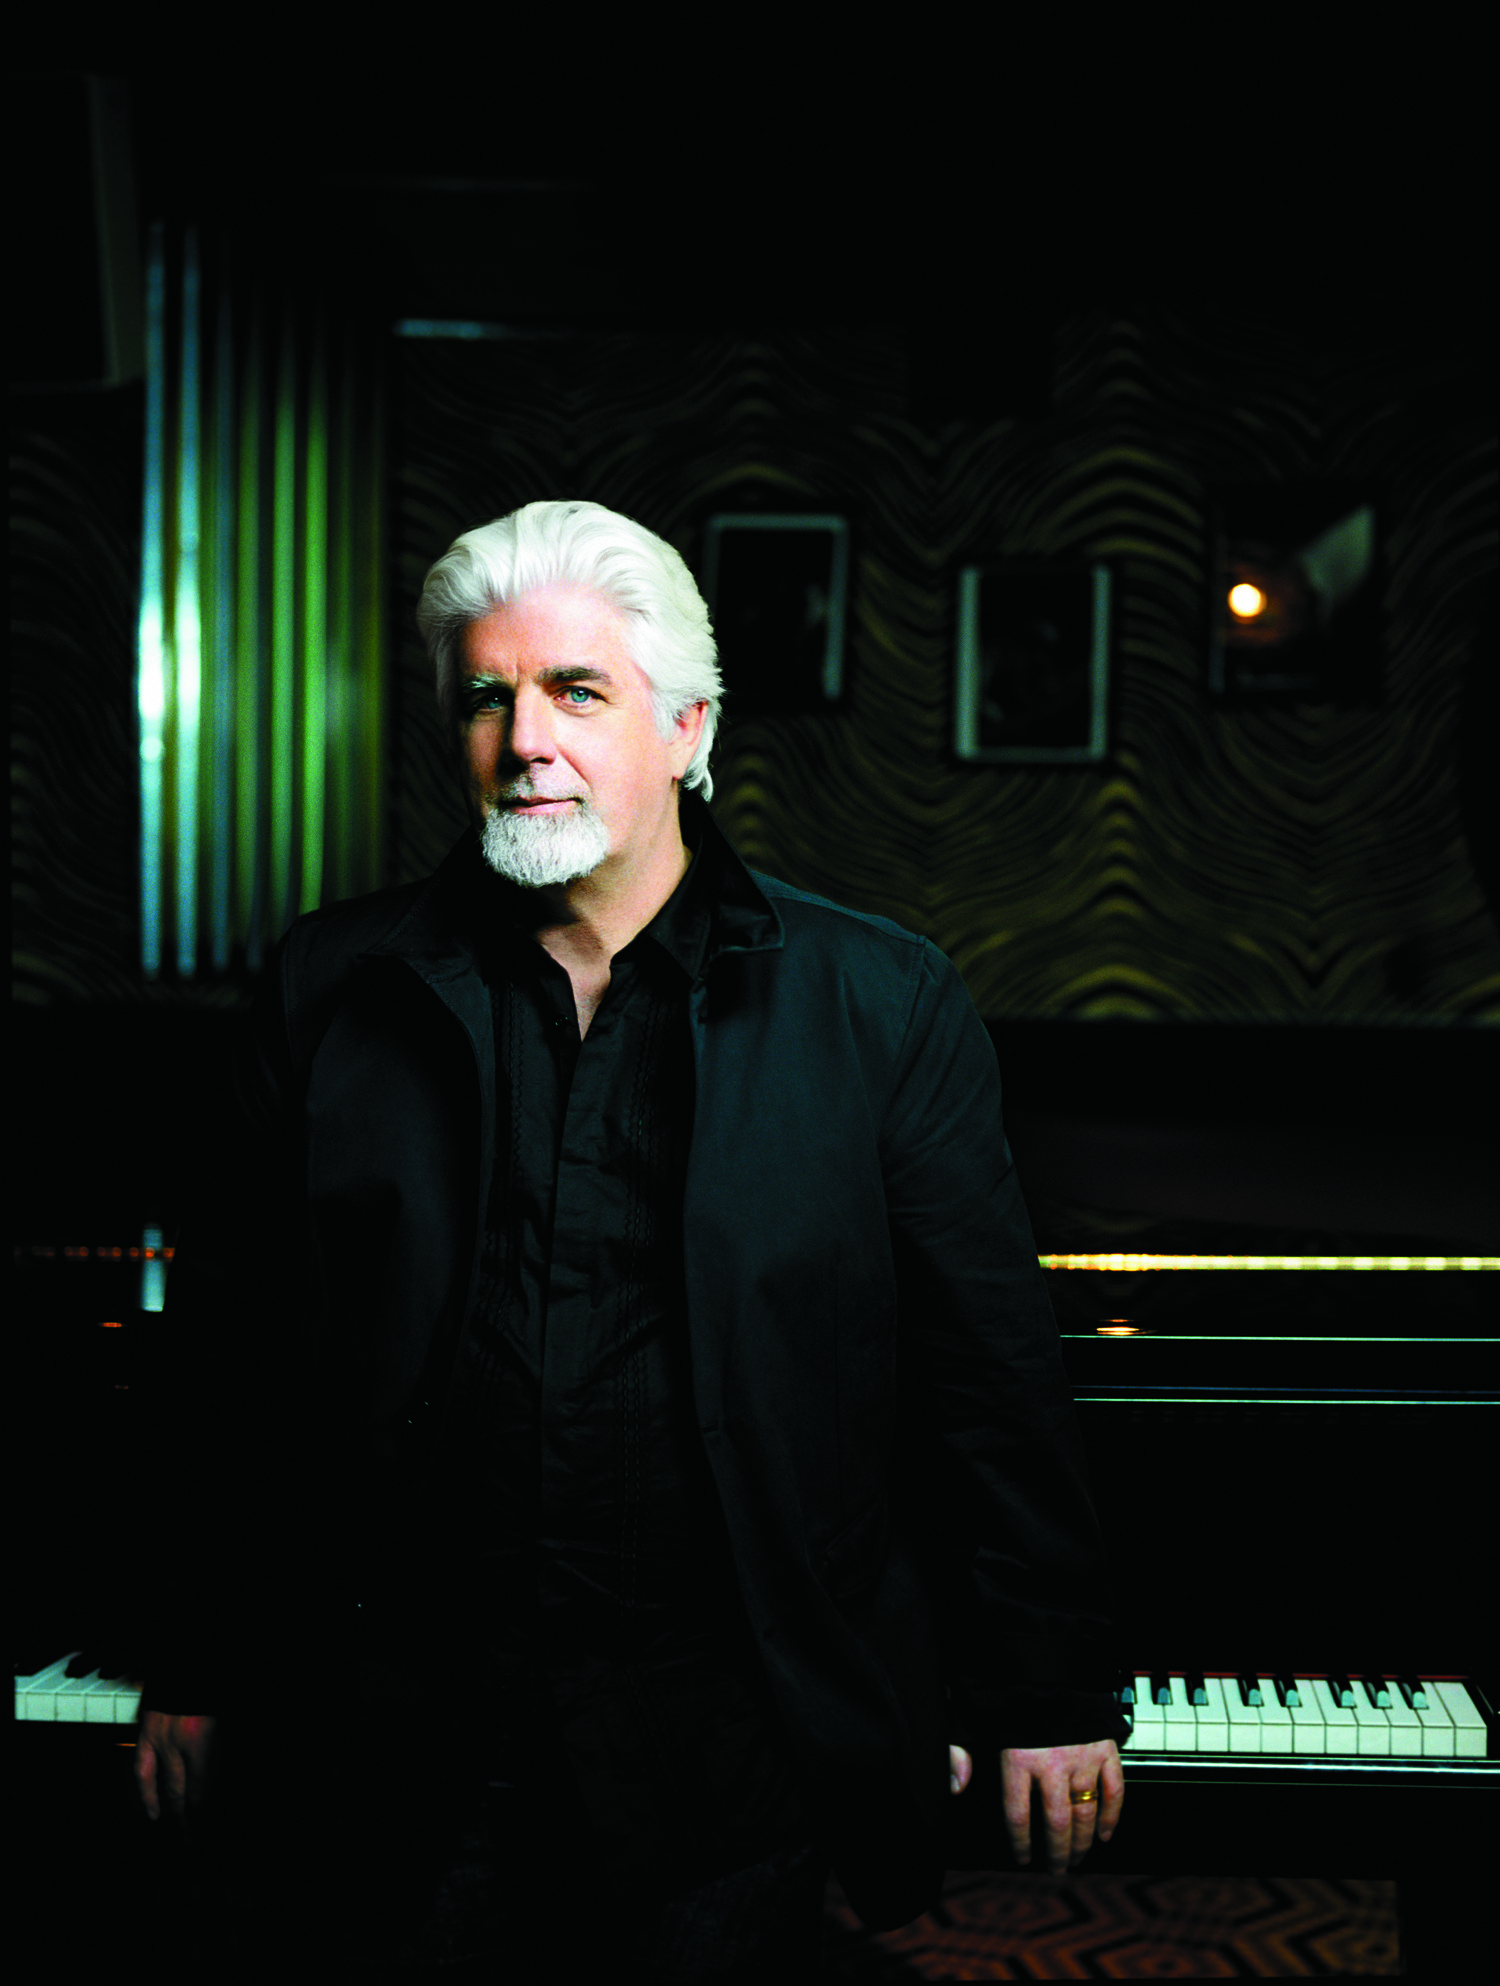 Tickets to see Michael McDonald and Toto at the Ferguson go on sale ...